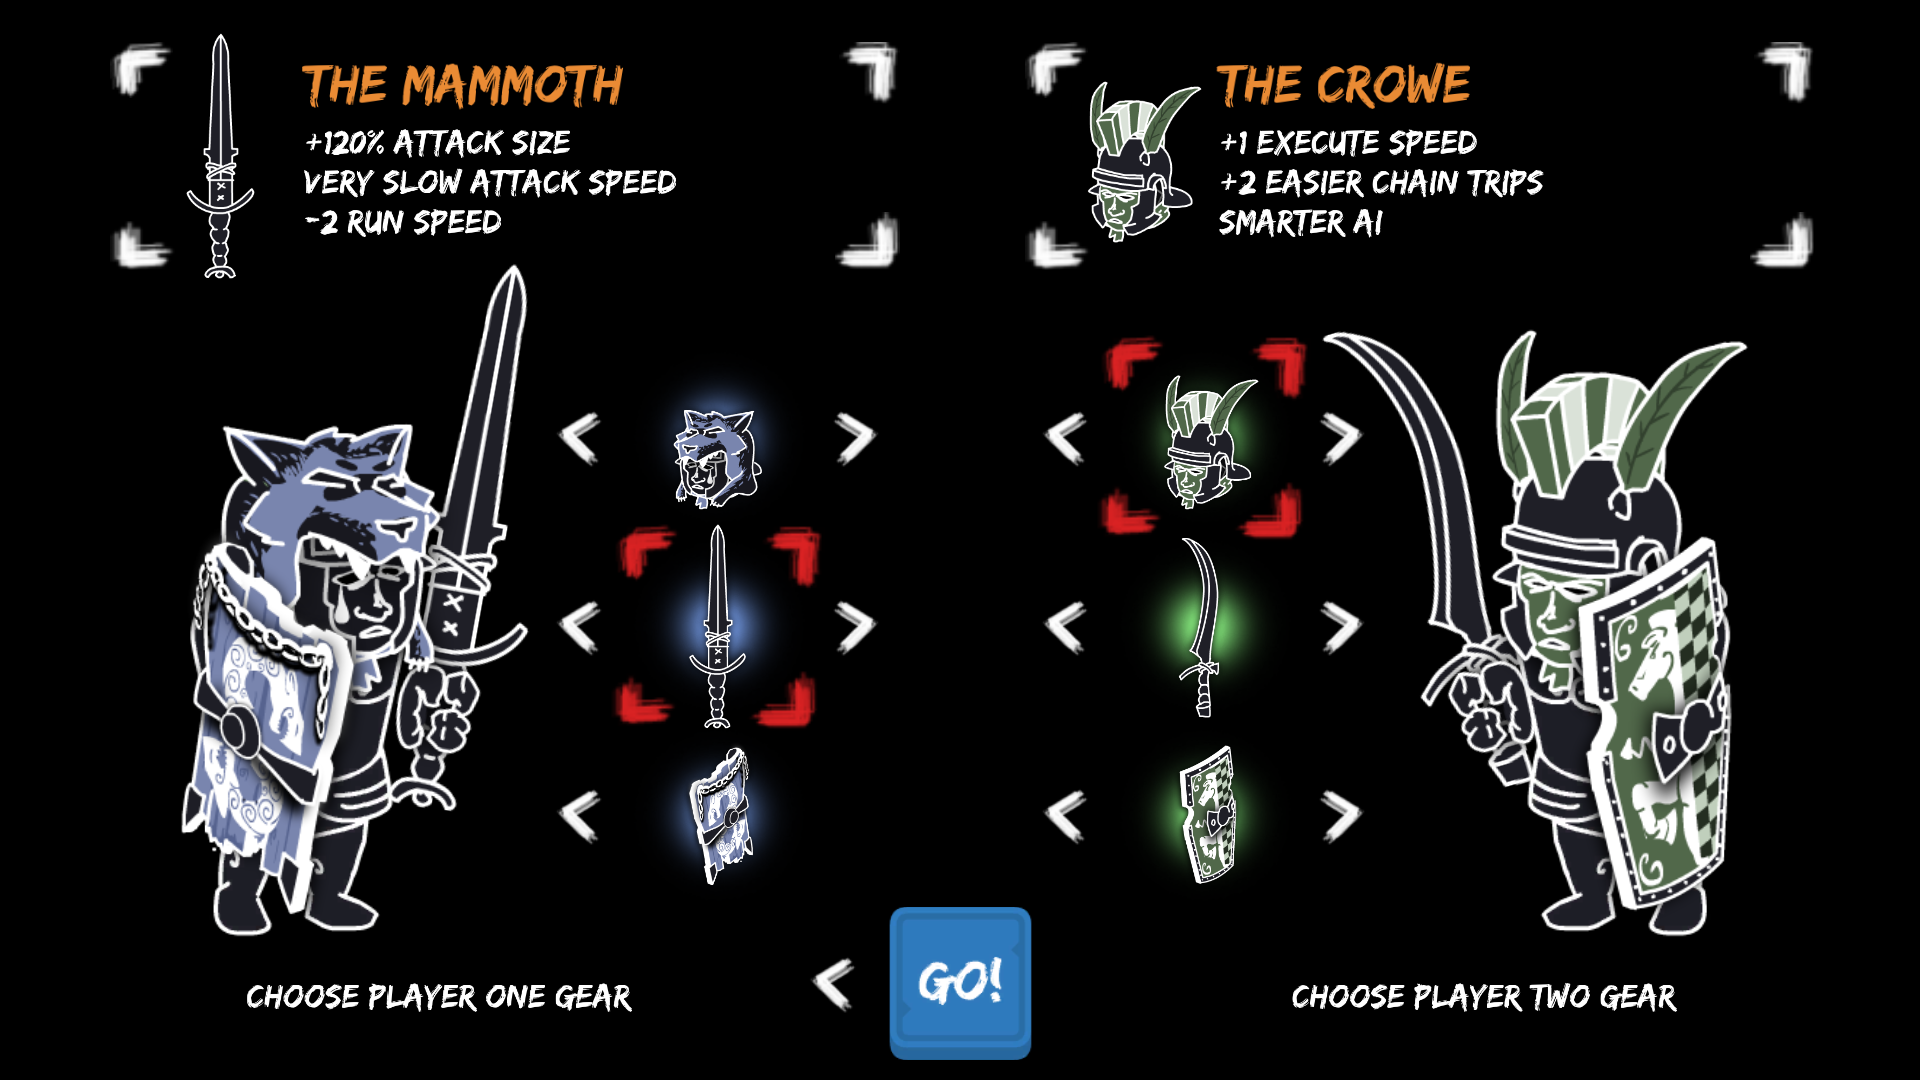 The gear menu